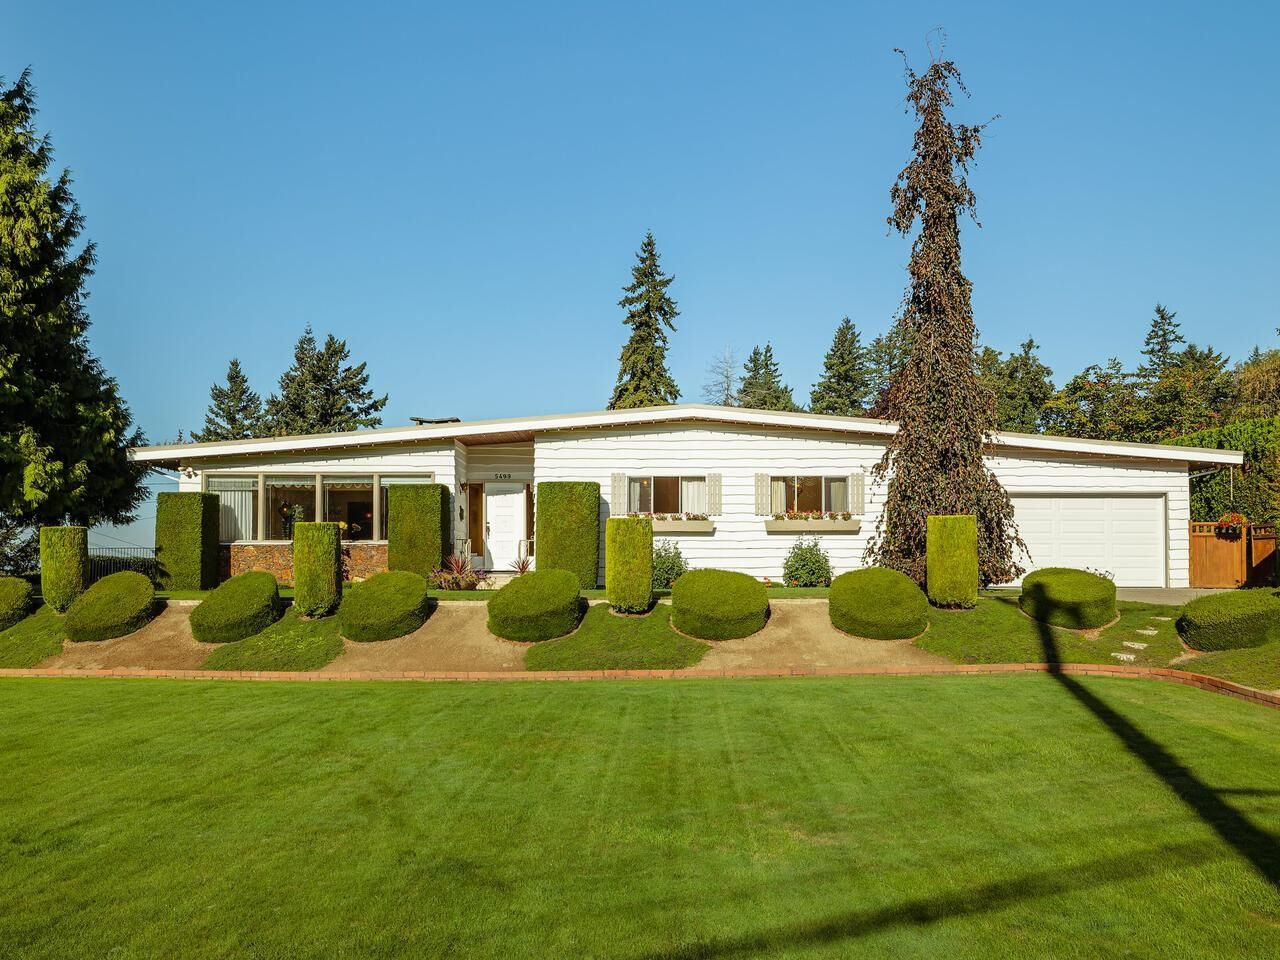 """Main Photo: 5499 120 Street in Delta: Sunshine Hills Woods House for sale in """"PANORAMA RIDGE"""" (N. Delta)  : MLS®# R2614344"""